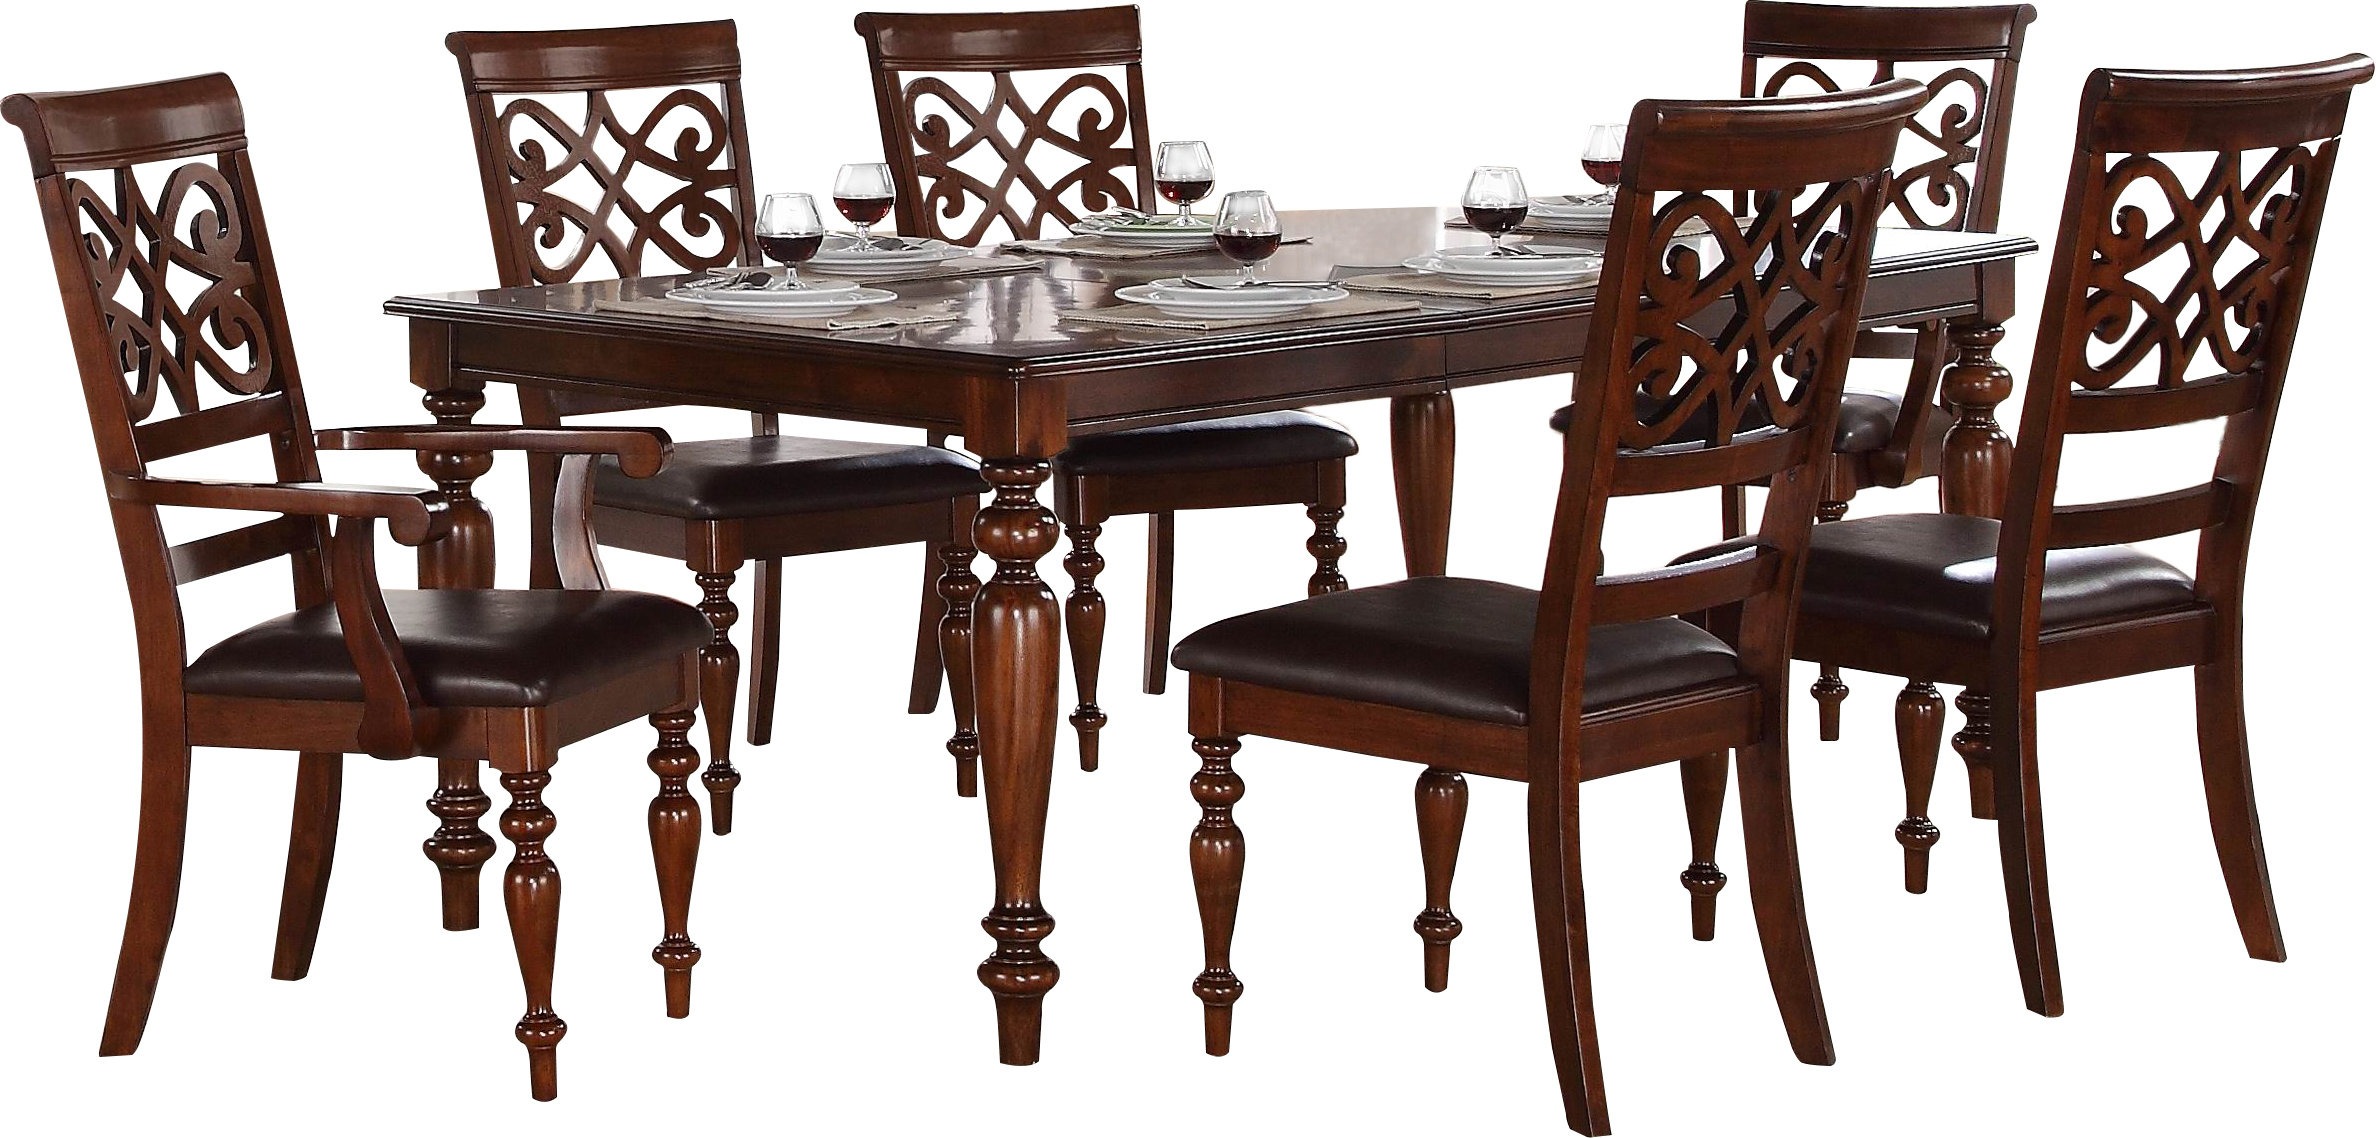 Laconia 7 Pieces Solid Wood Dining Sets (Set Of 7) Intended For Most Current Darby Home Co Leith 7 Piece Dining Set & Reviews (View 8 of 25)